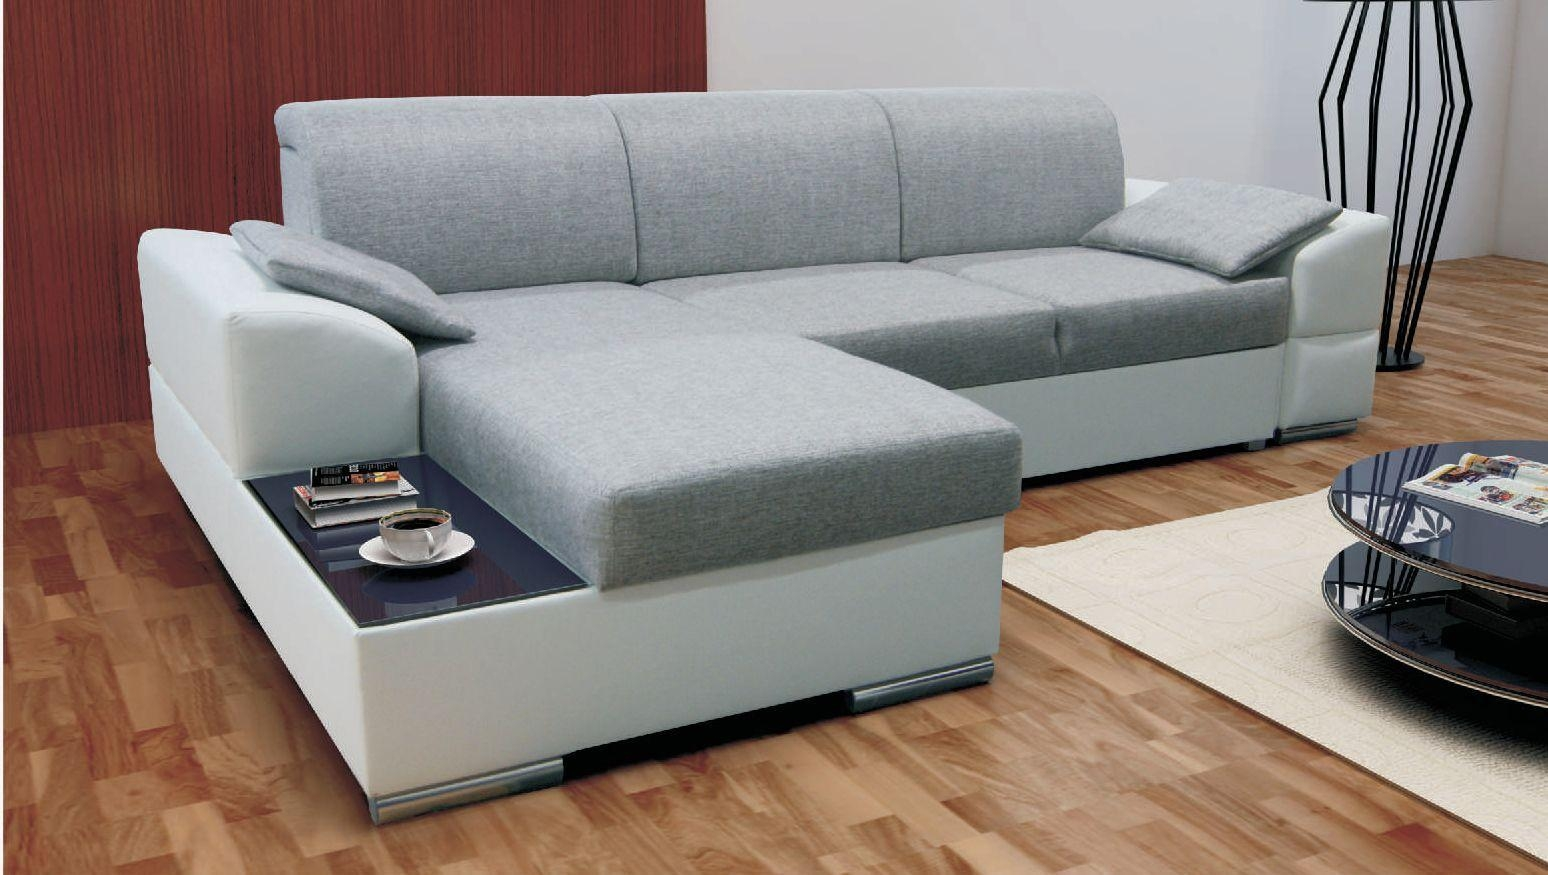 Corner sofas with storage malaga luxury corner sofa bed for Sofas malaga